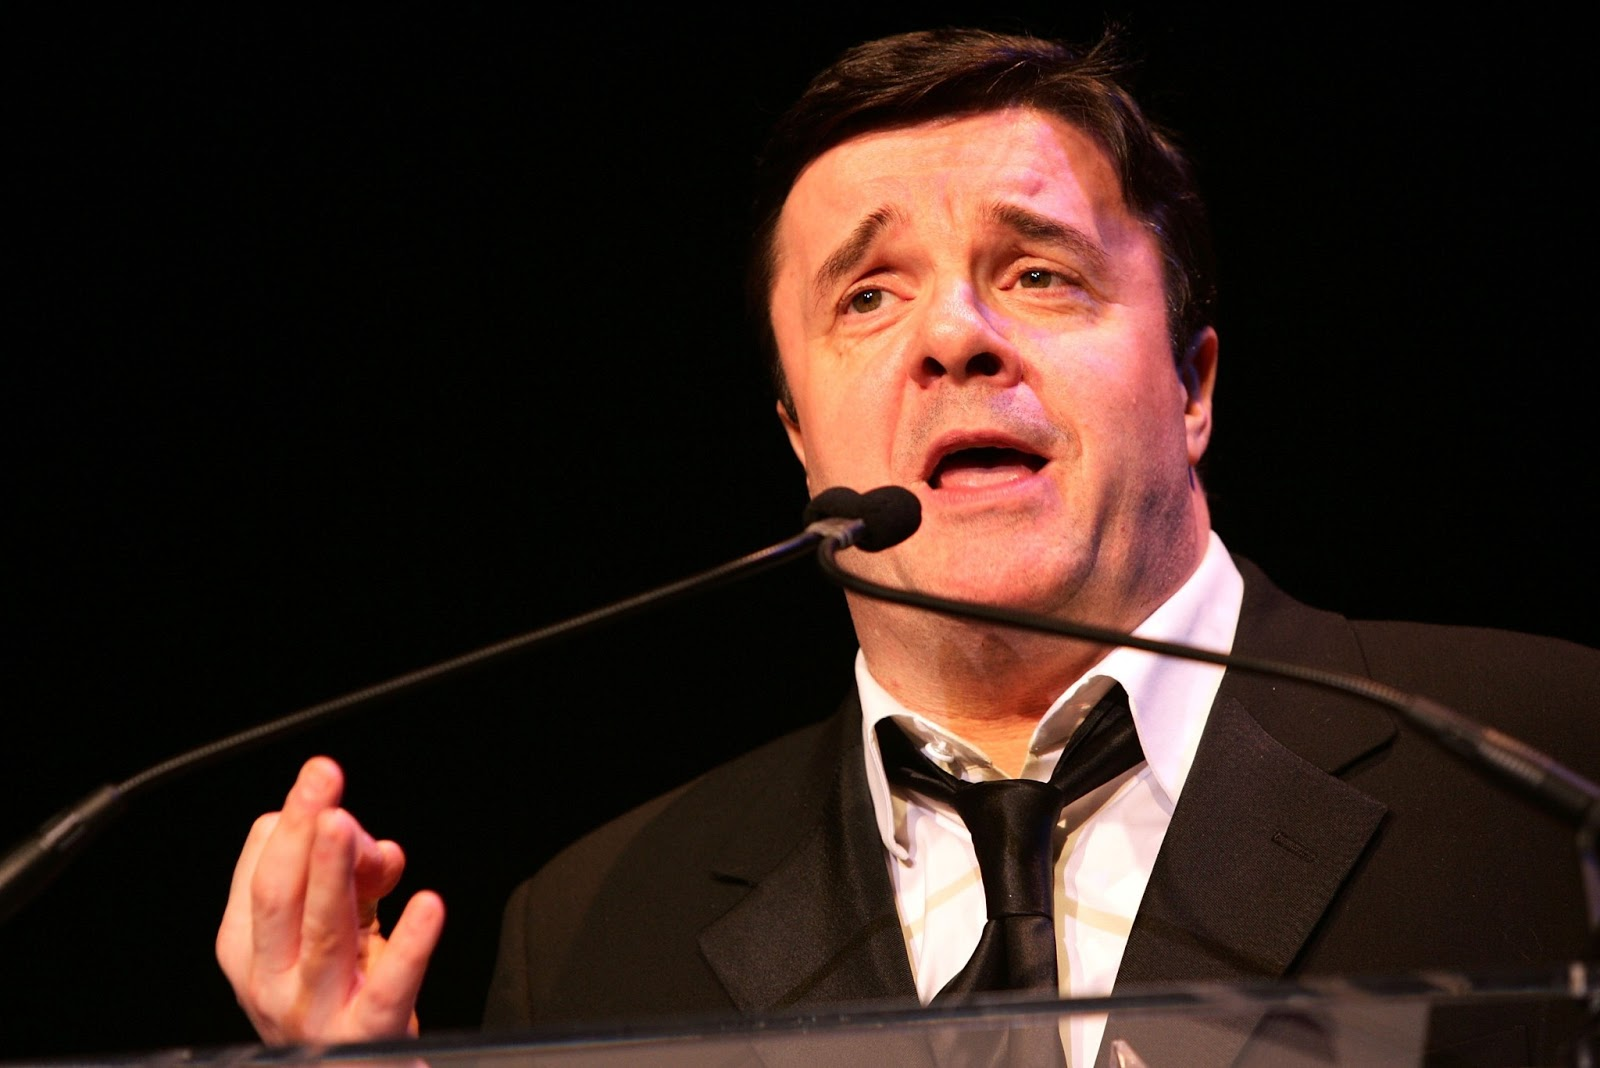 nathan lane 2014/8/12  nathan lane and robin williams made comedy history when they co-starred in the 1996 film the birdcage, the hit film version of the much-adapted french play la cage aux folles they played domestic partners, williams as the owner as a drag club and lane as its histrionic star in a statement to time.